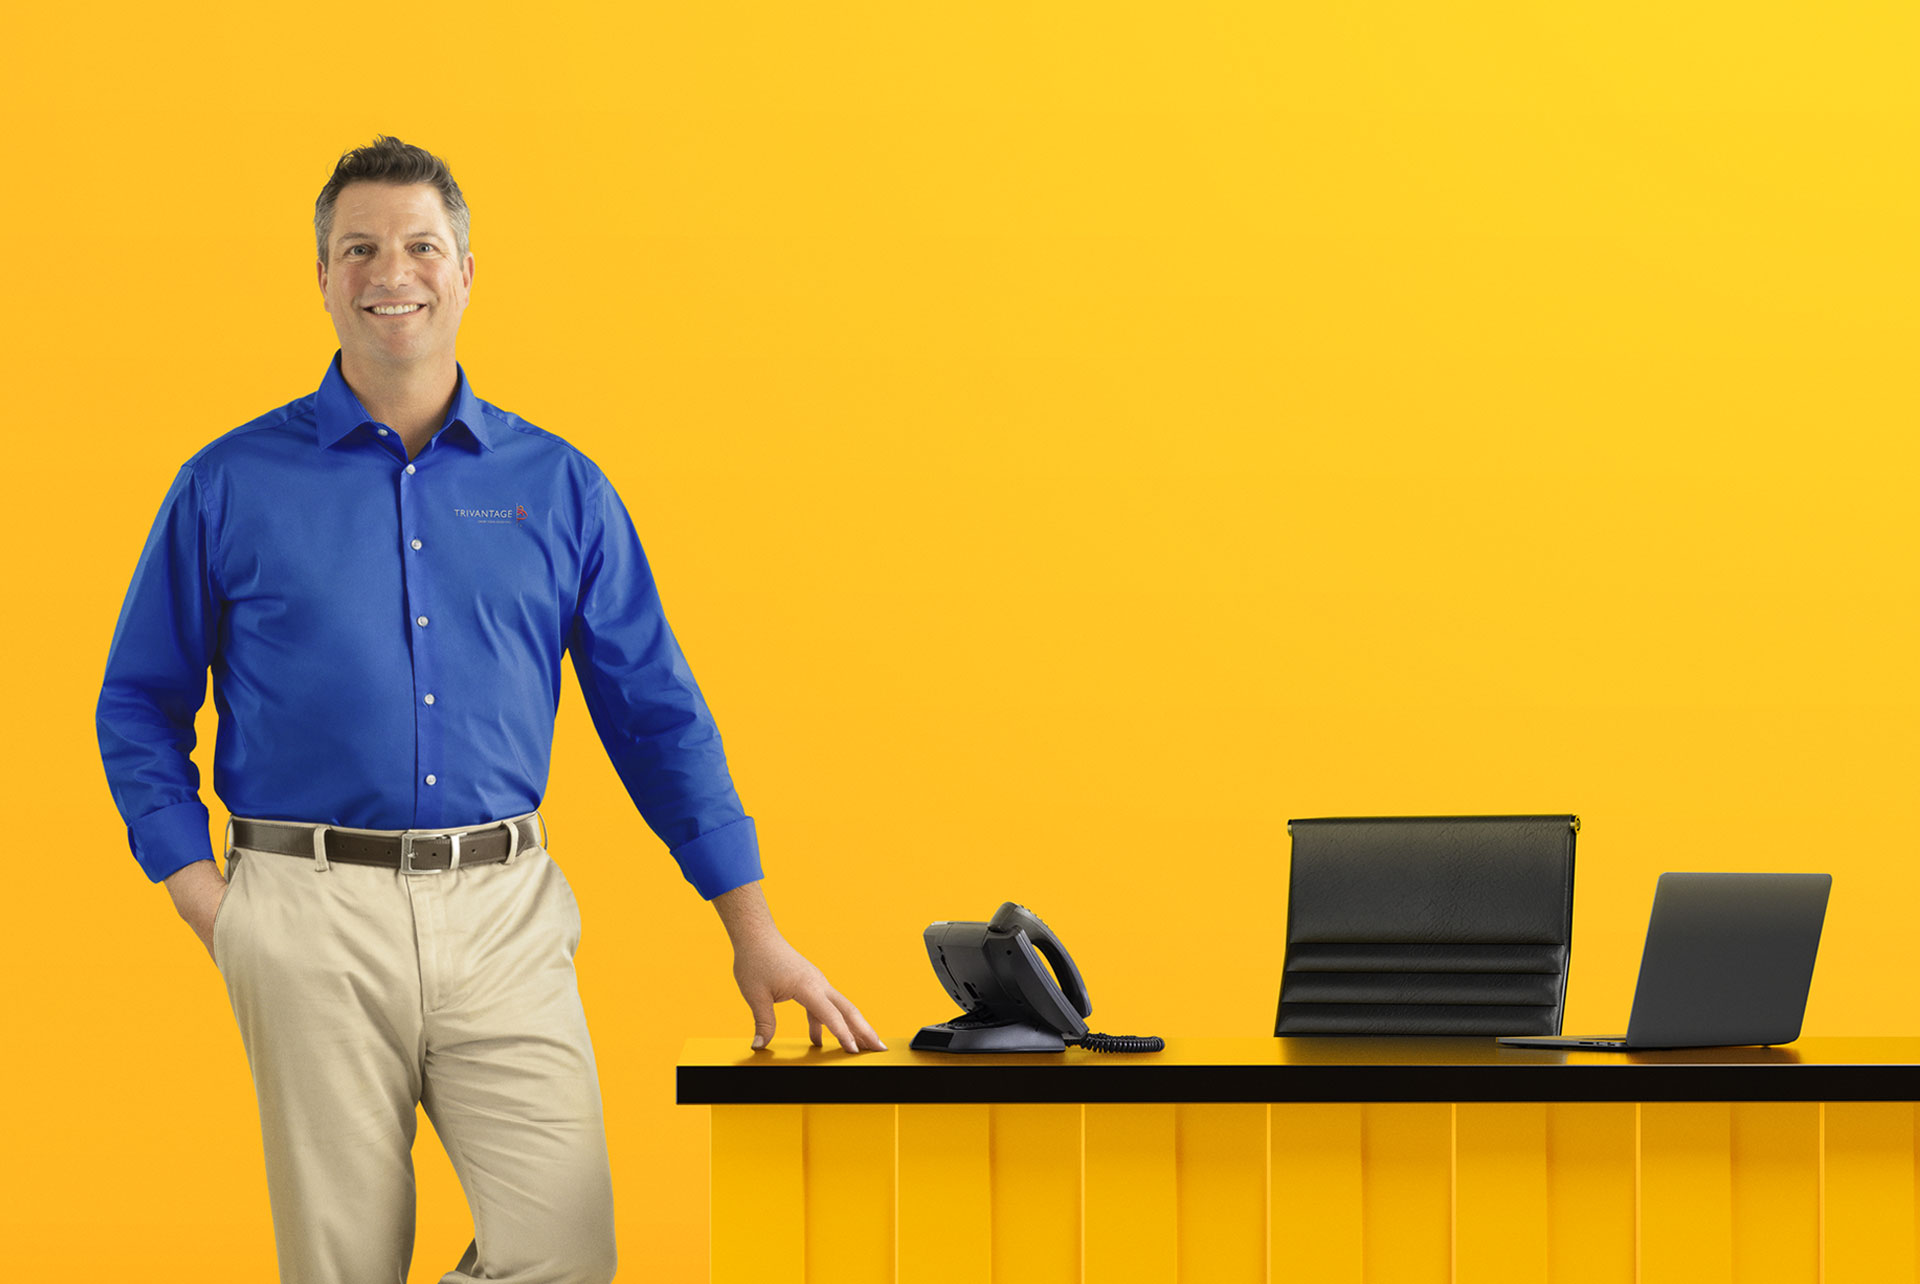 salesperson next to desk